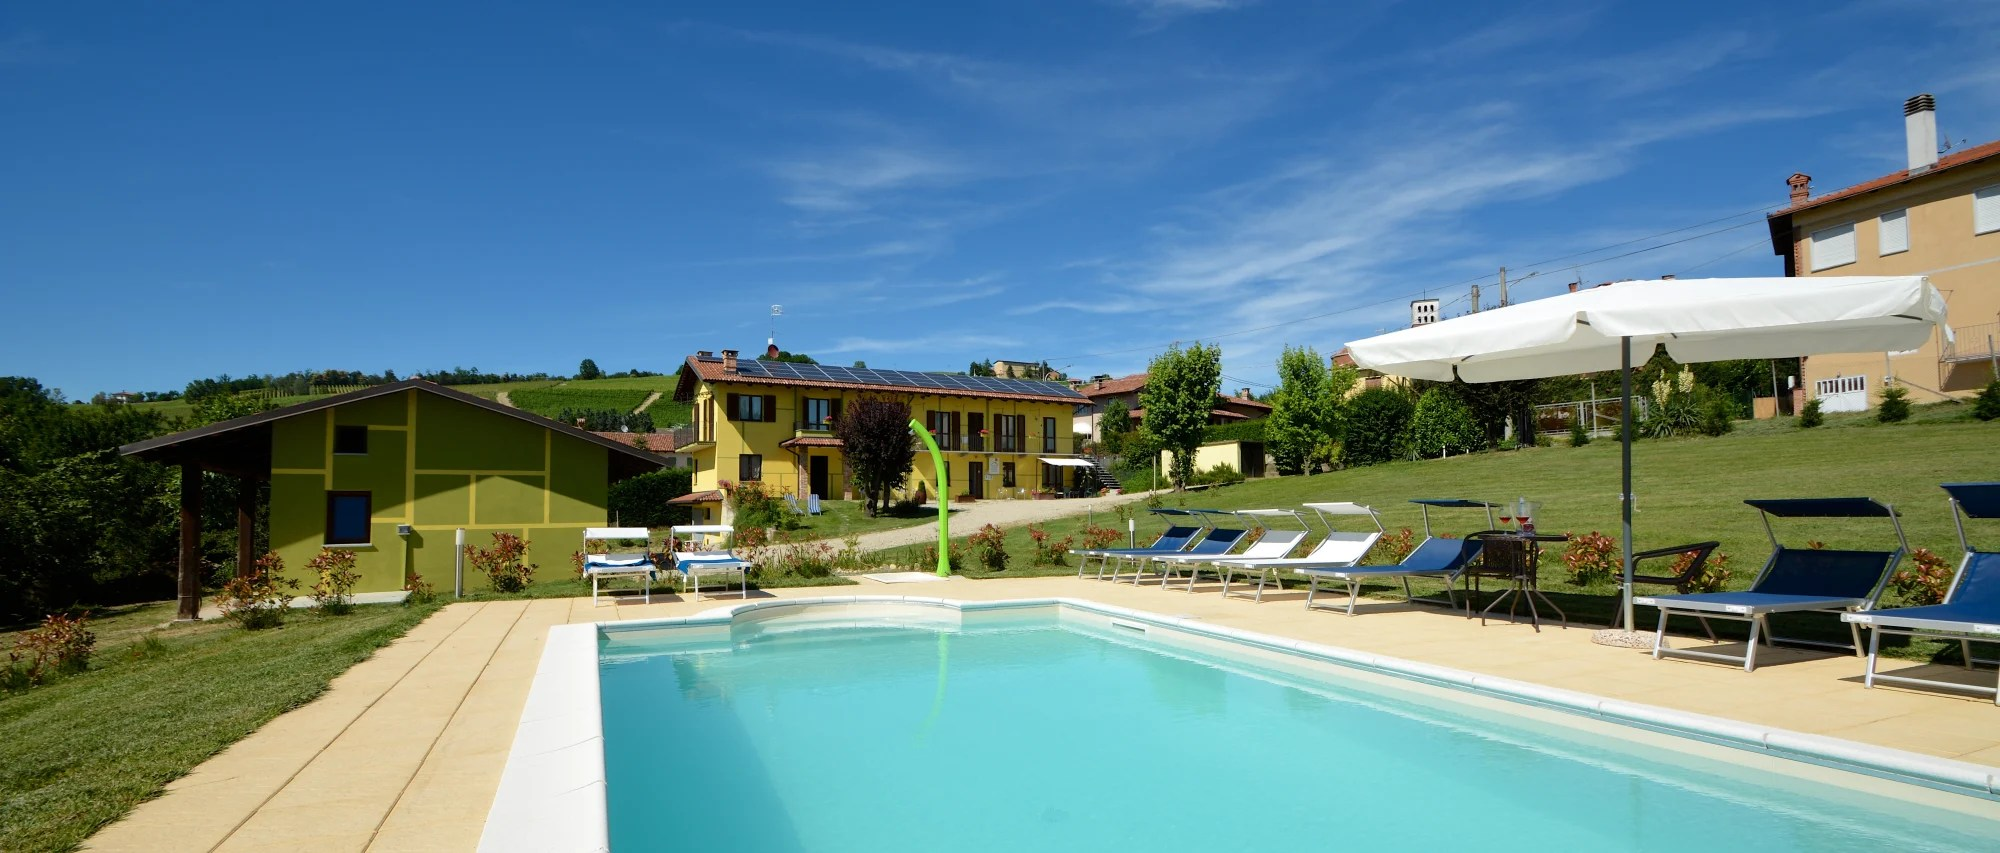 Albergo Ristorante Giardino Da Felicin Bed Breakfast The Green Guesthouse Barolo Trivago It